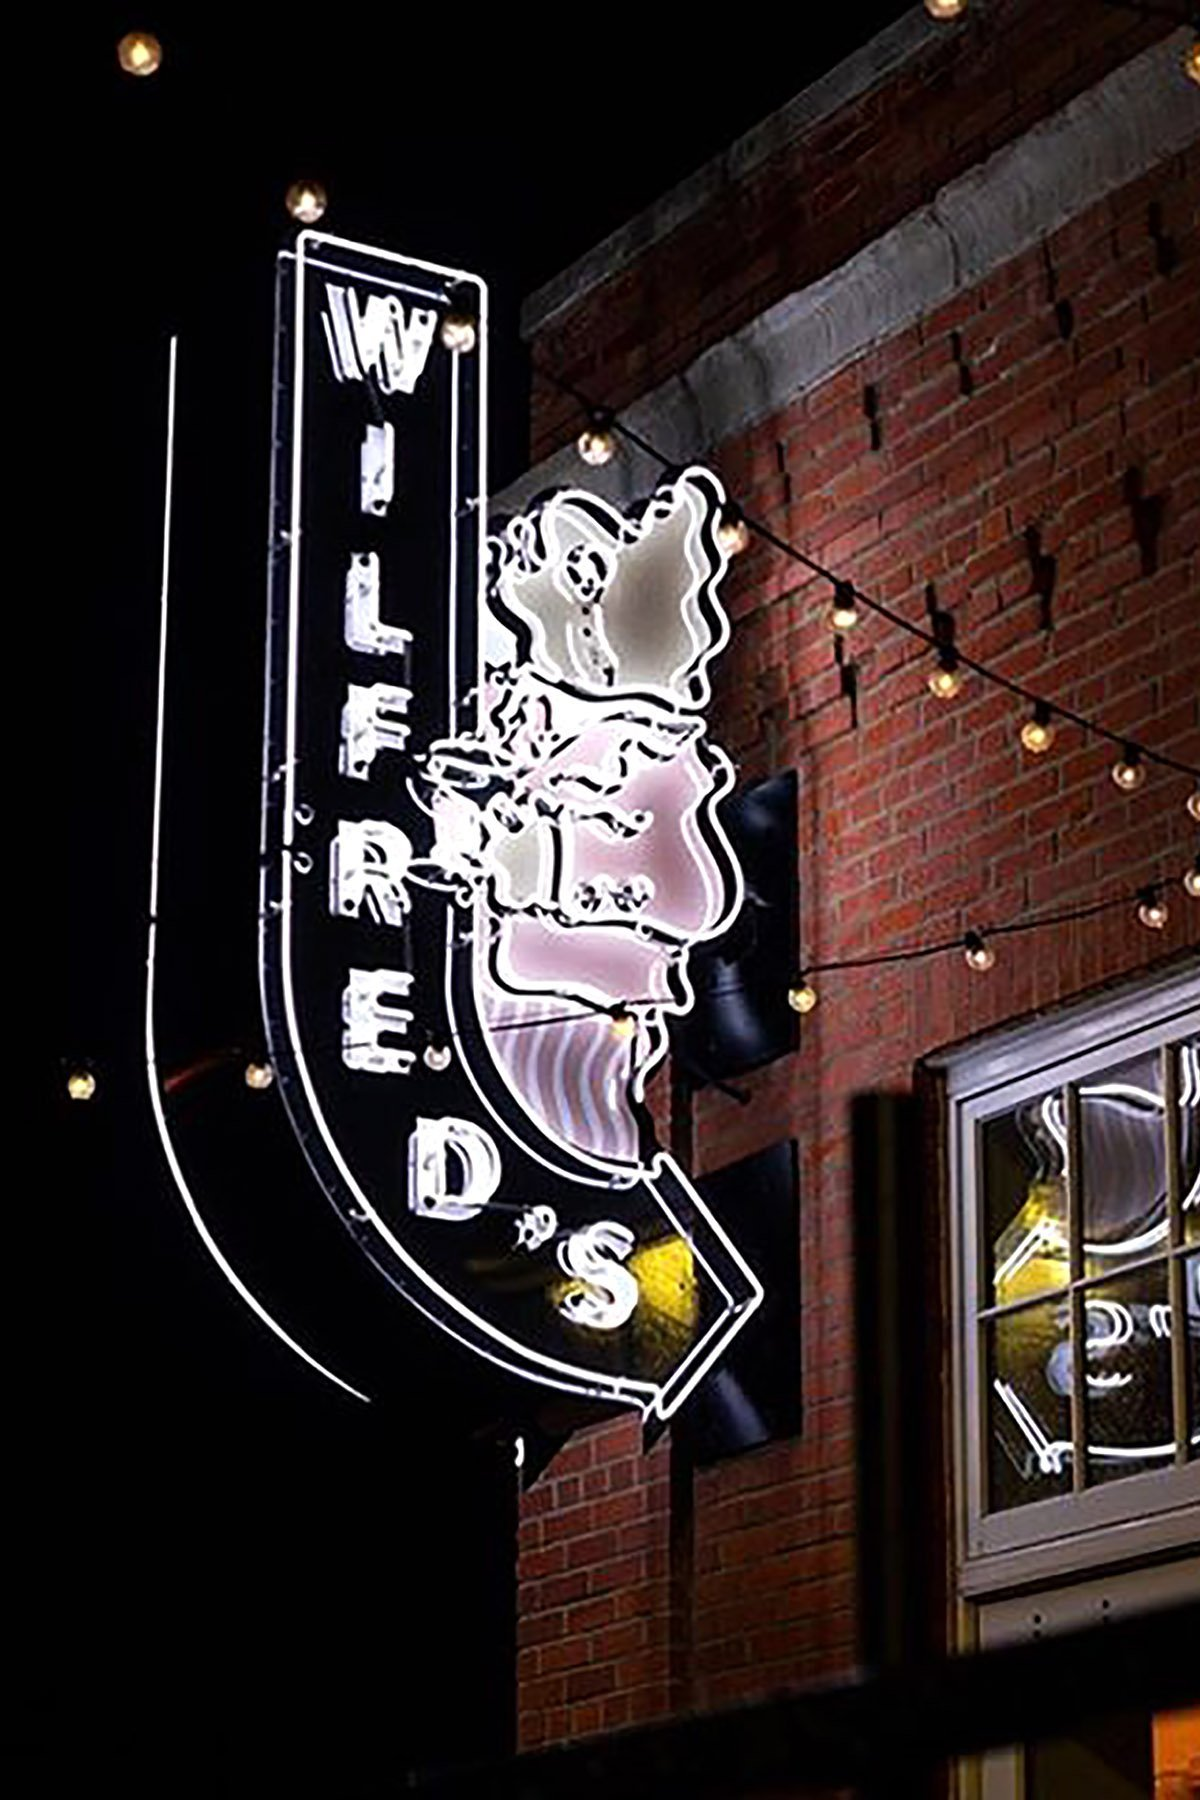 Night shot of projecting neon sign for Wilfred's